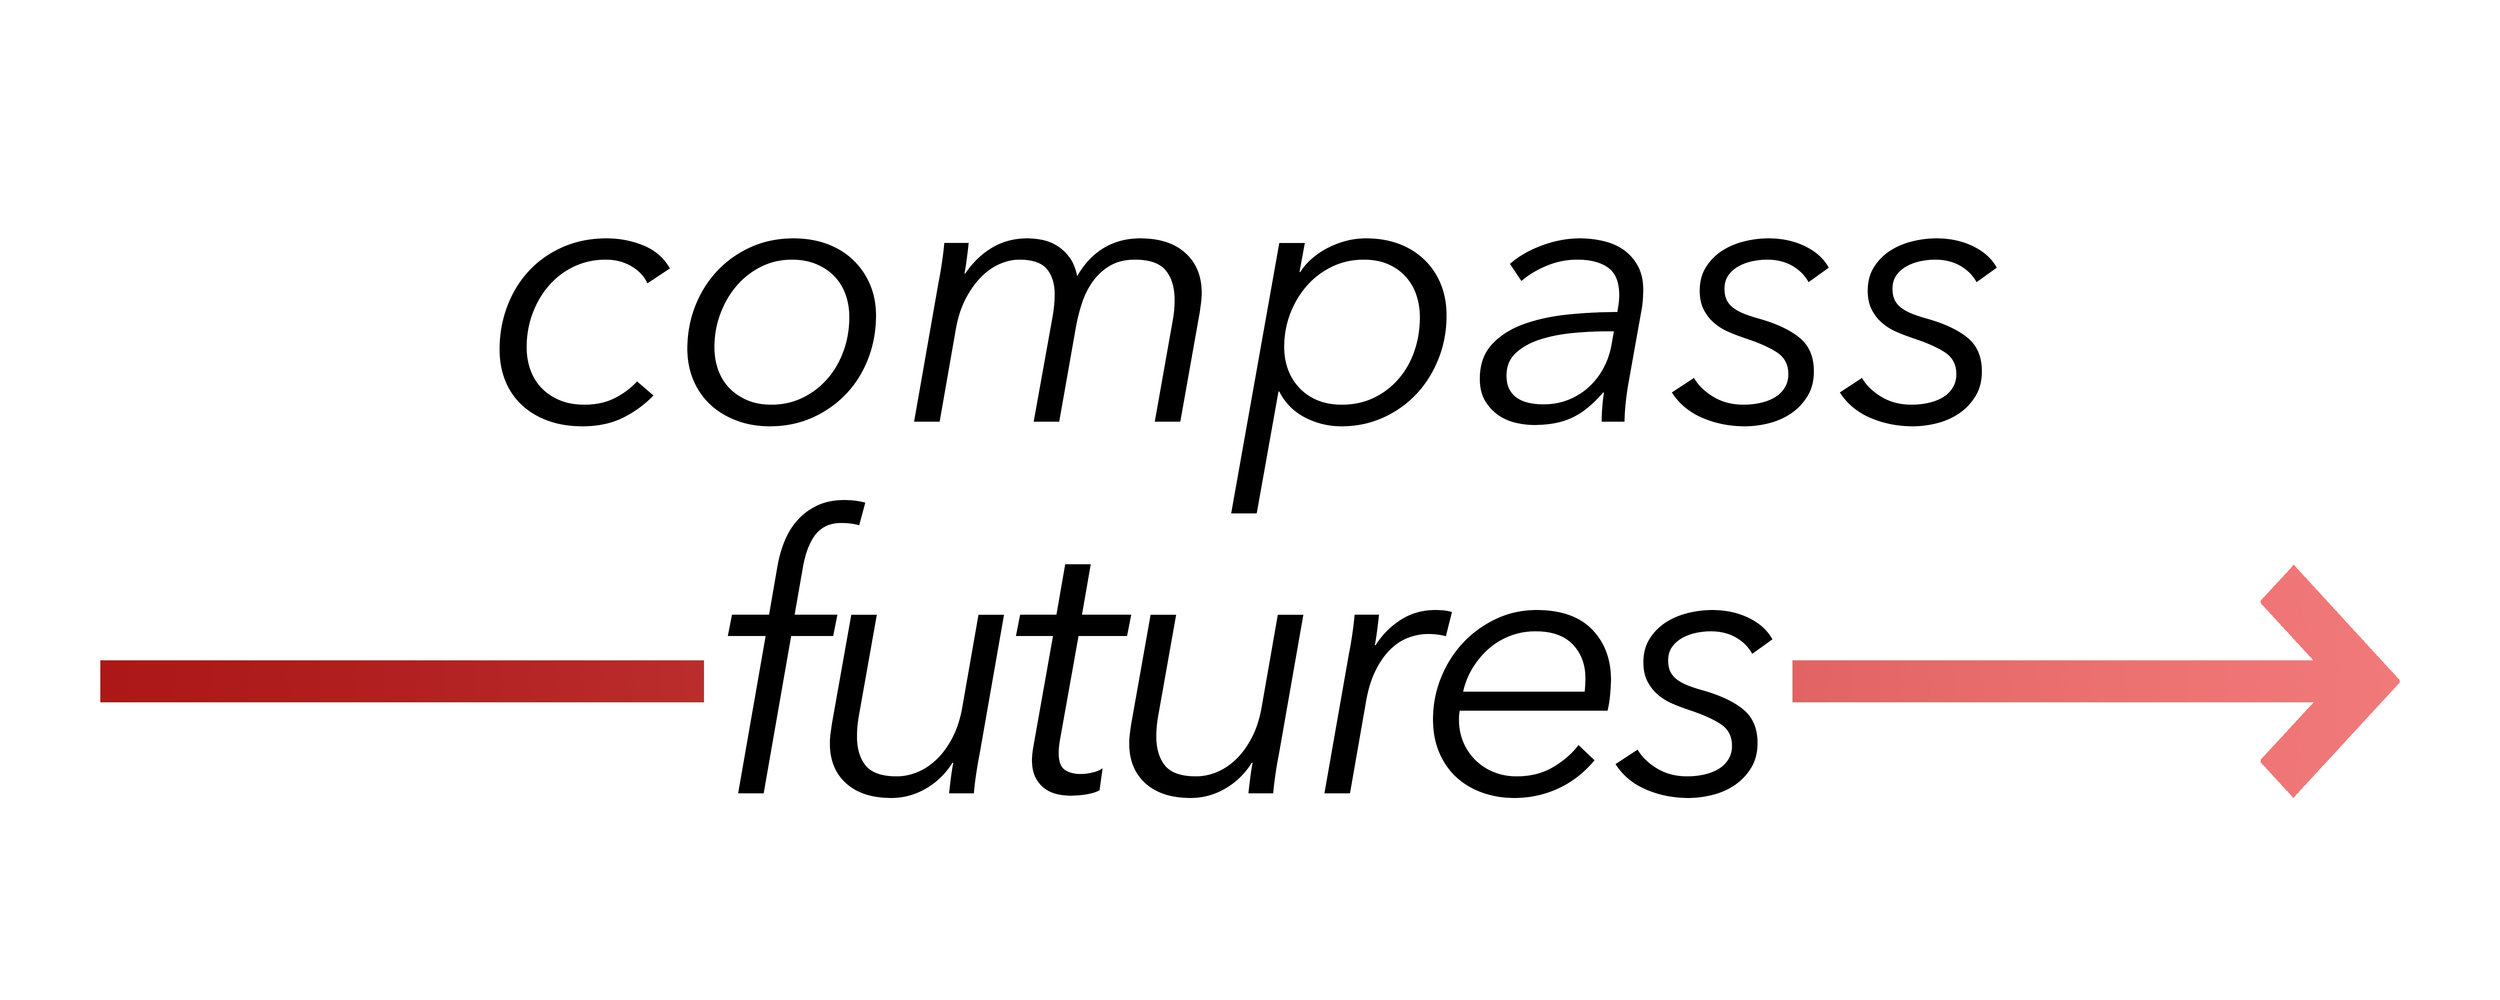 CompassFutures.jpg